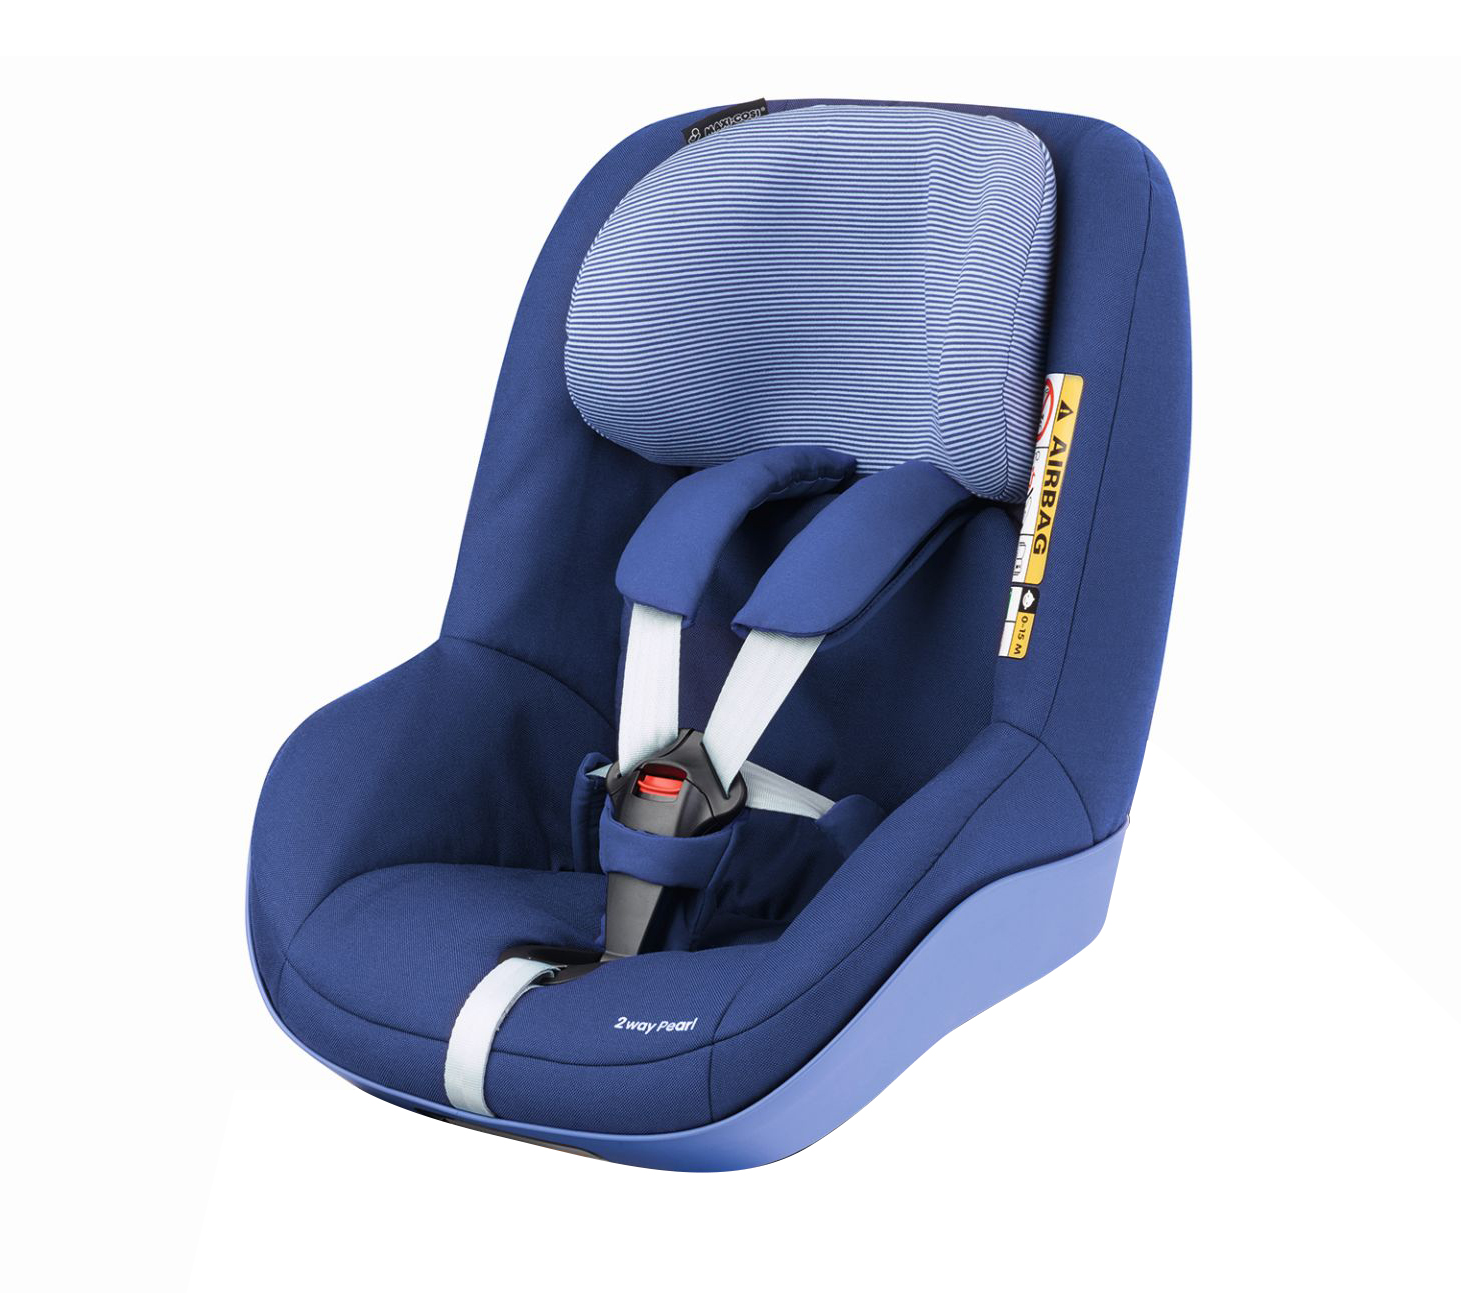 maxi cosi silla de coche 2way pearl 2017 river blue comprar en kidsroom sillas de coche. Black Bedroom Furniture Sets. Home Design Ideas